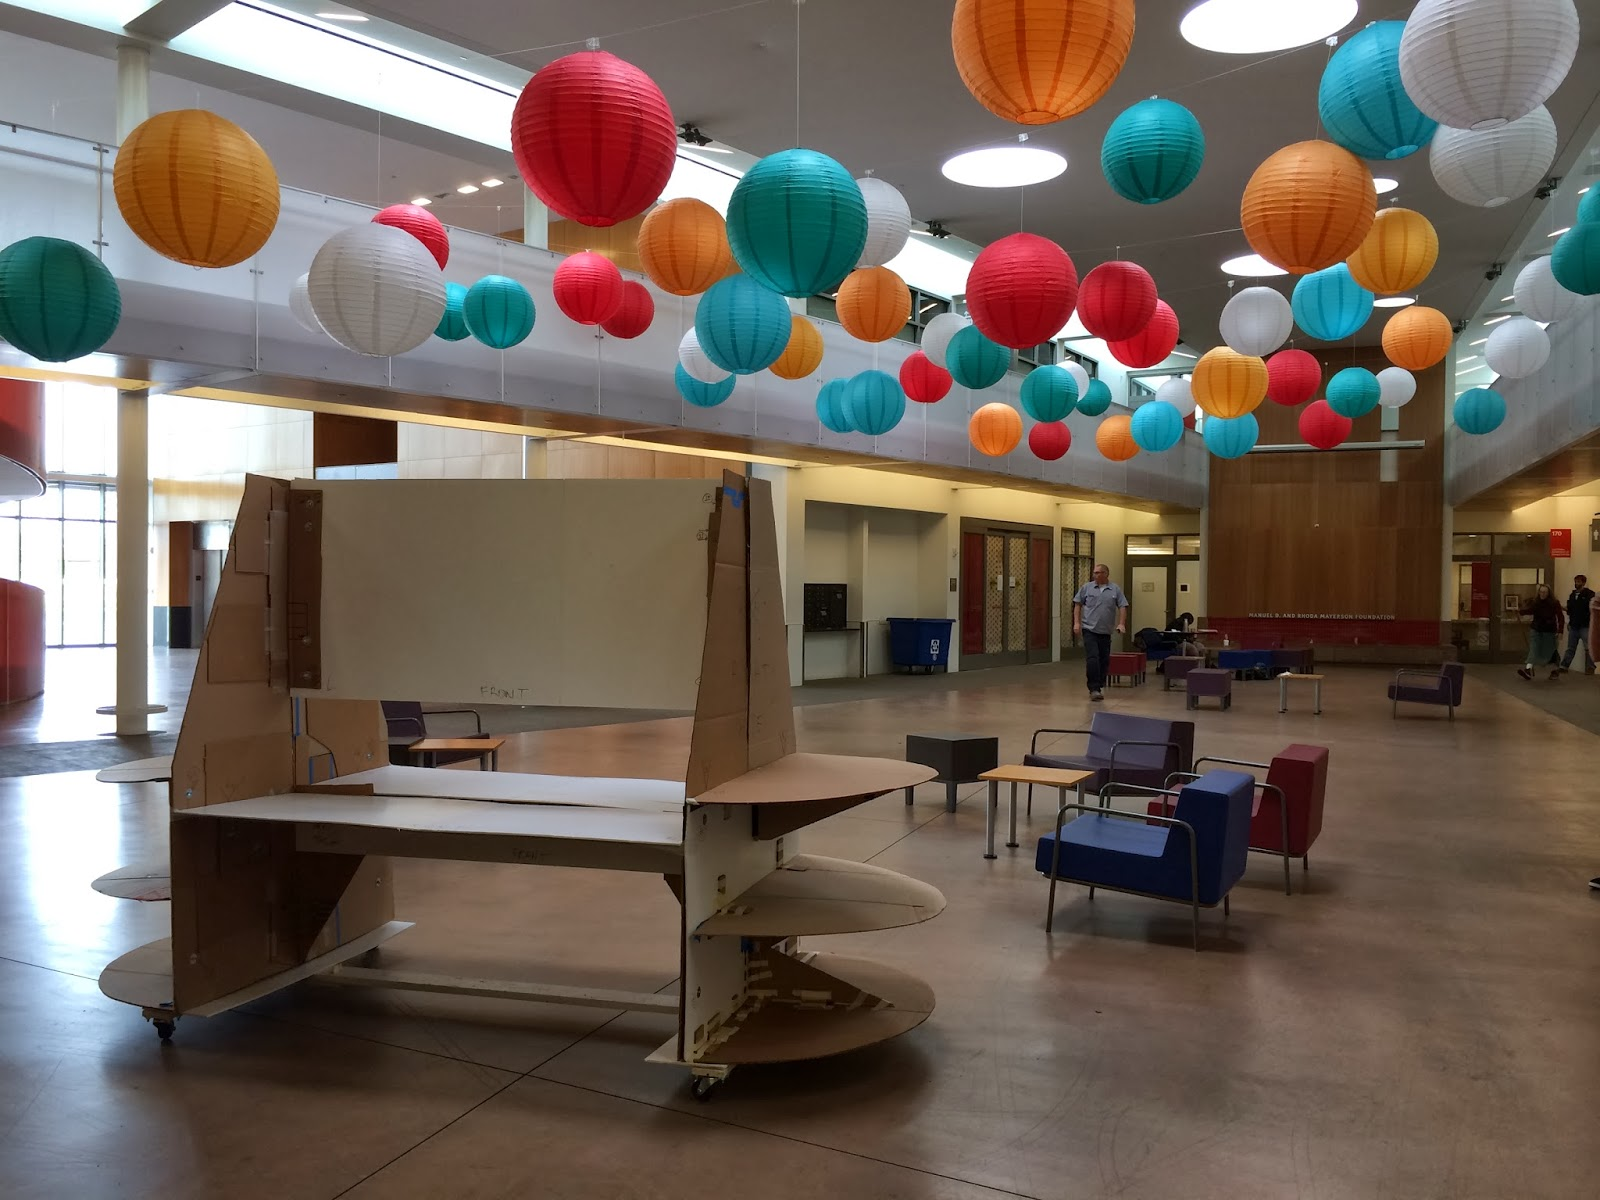 A full scale exhibit display made of cardboard stands inside the Ed Roberts Campus while a variety of colored circular paper lanterns hang from the ceiling.